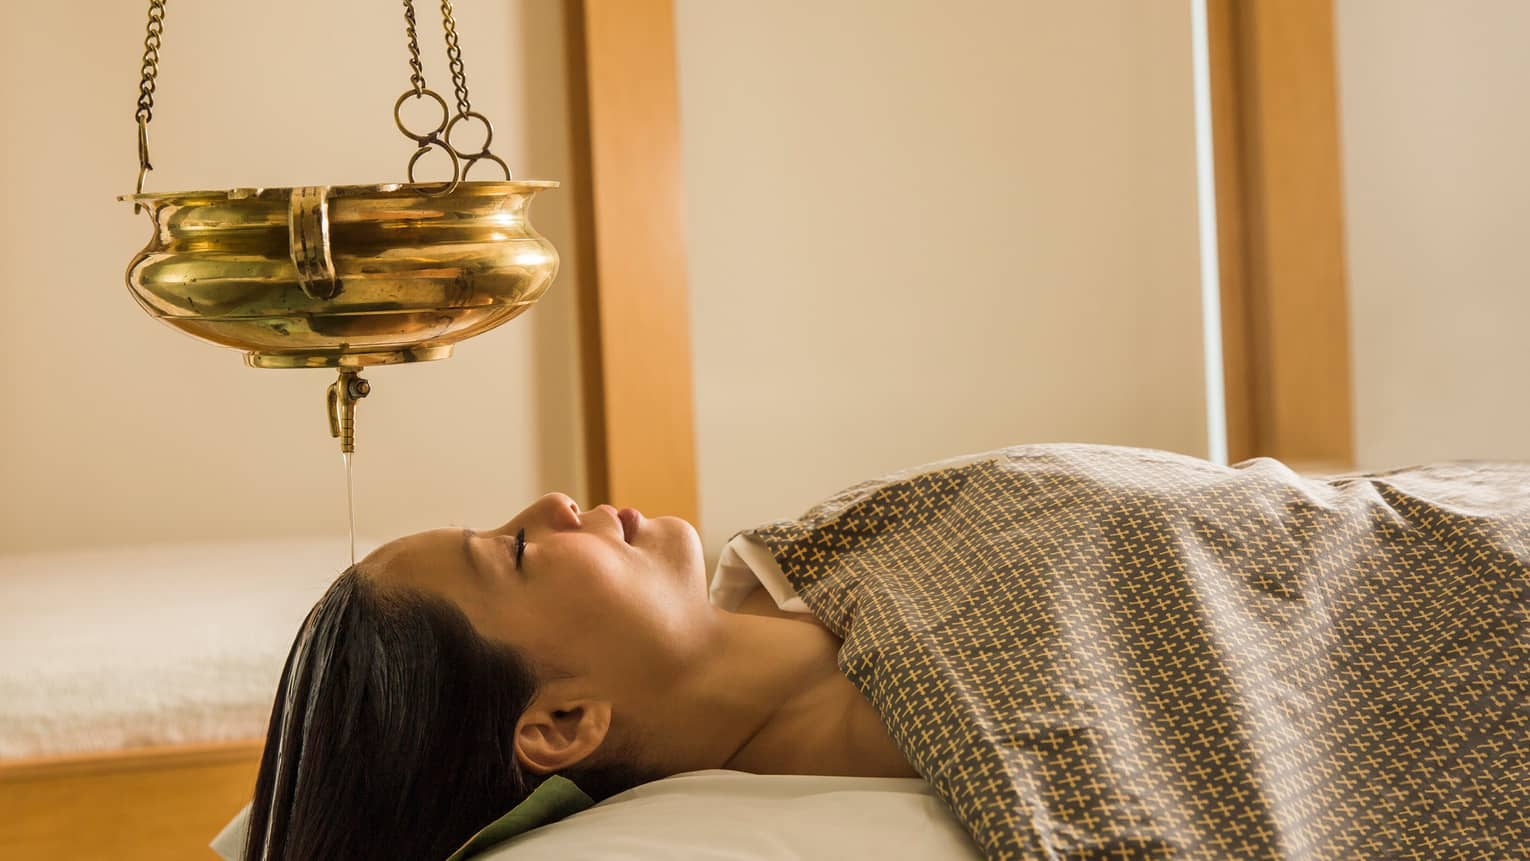 Woman lies face-up on massage table under blanket, eyes closed, gold lamp hanging above head